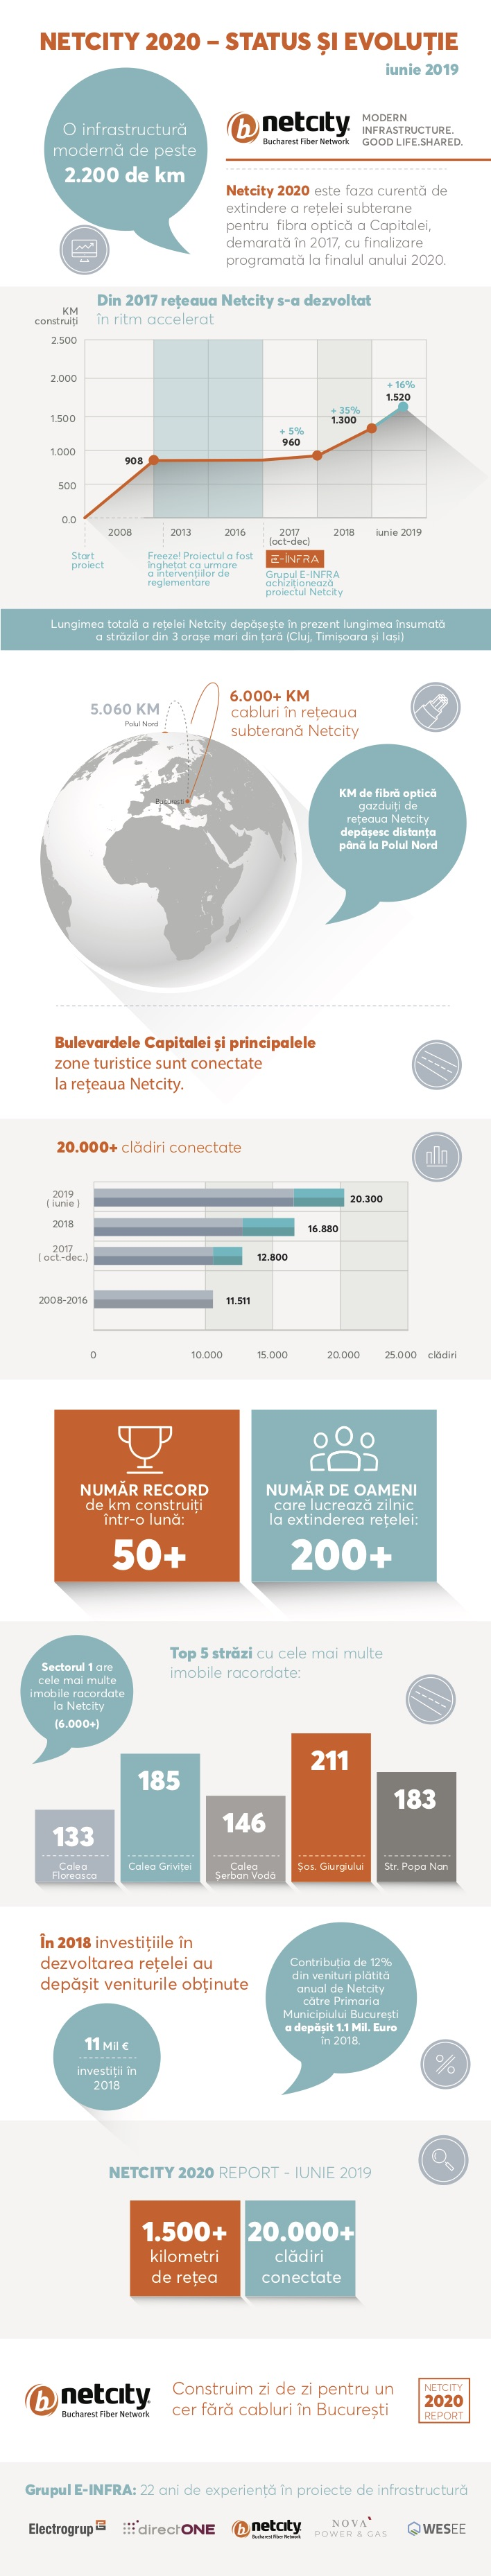 infografic-netcity-2020-report-final-3c